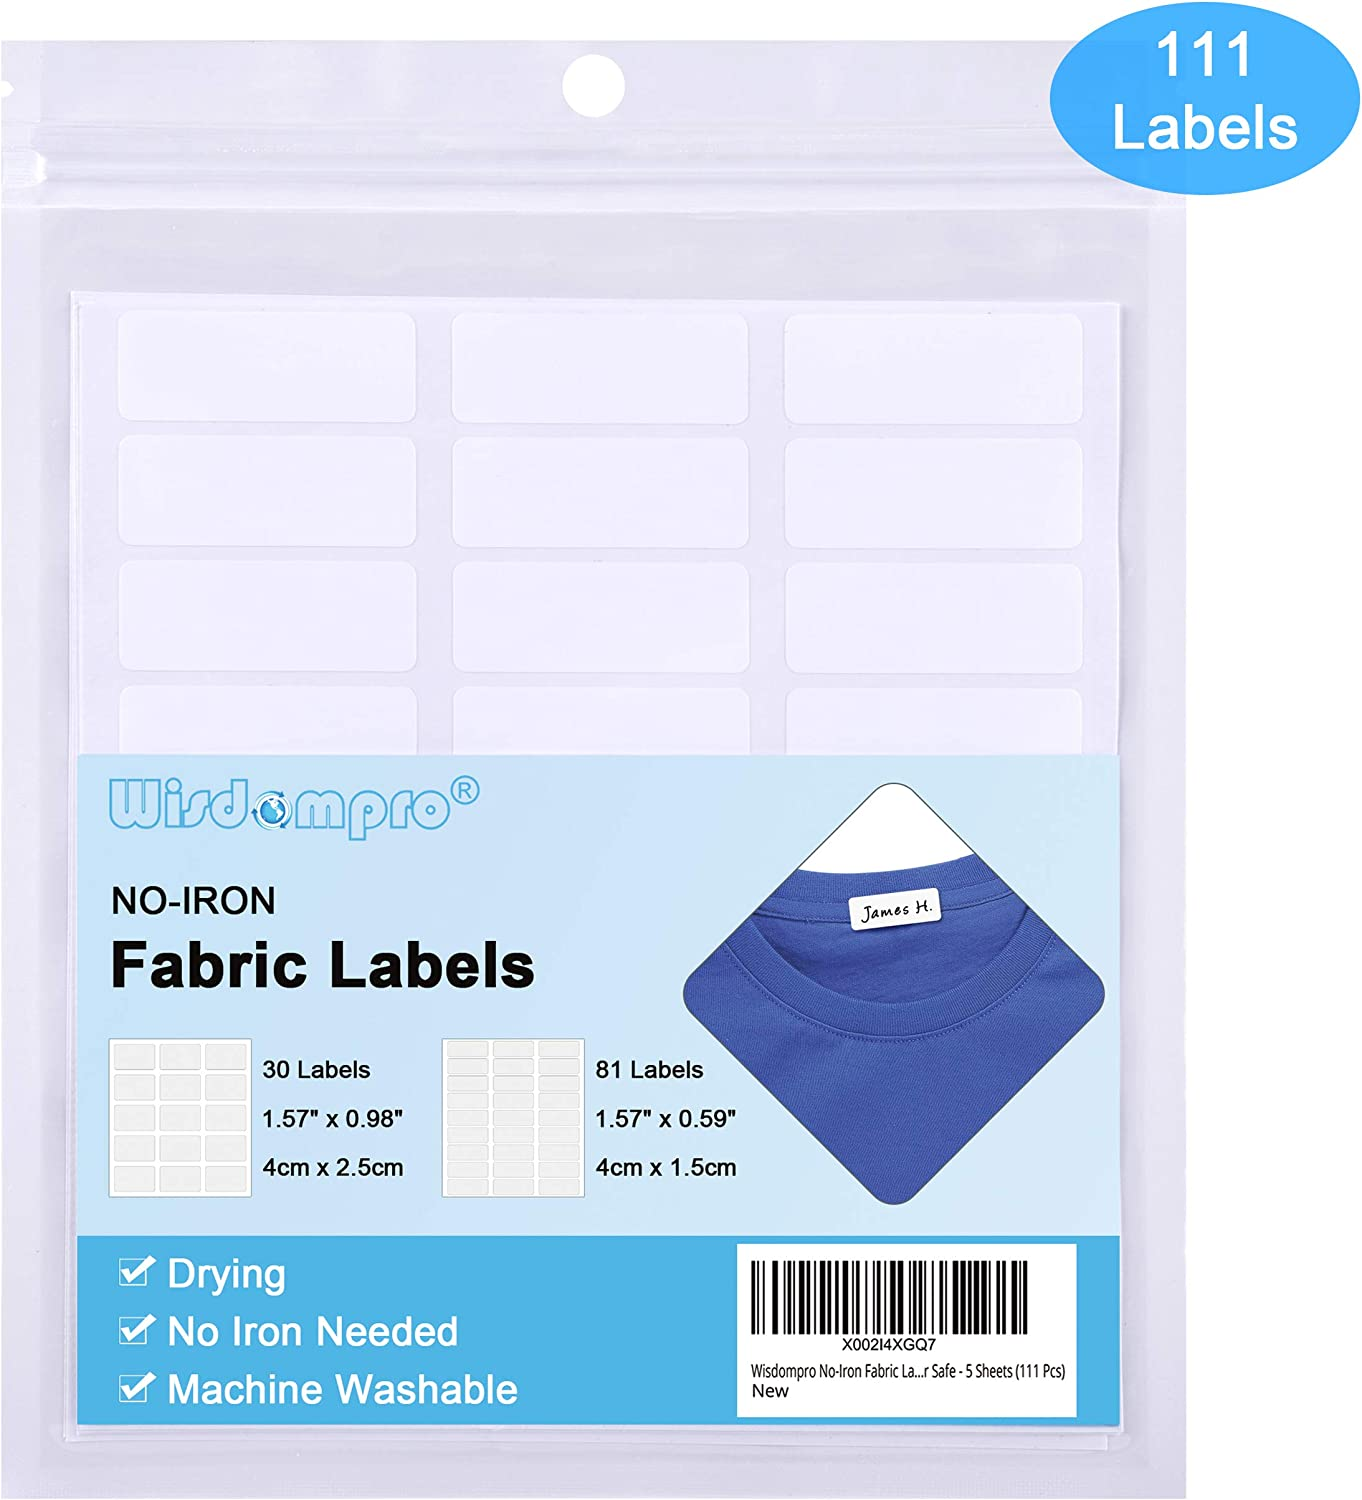 Wisdompro No-Iron Fabric Labels, Washer & Dryer Safe, Clothing Labels for Daycare, School and Nursing Home, Pack of 111 - Rectangle, 2 Sizes